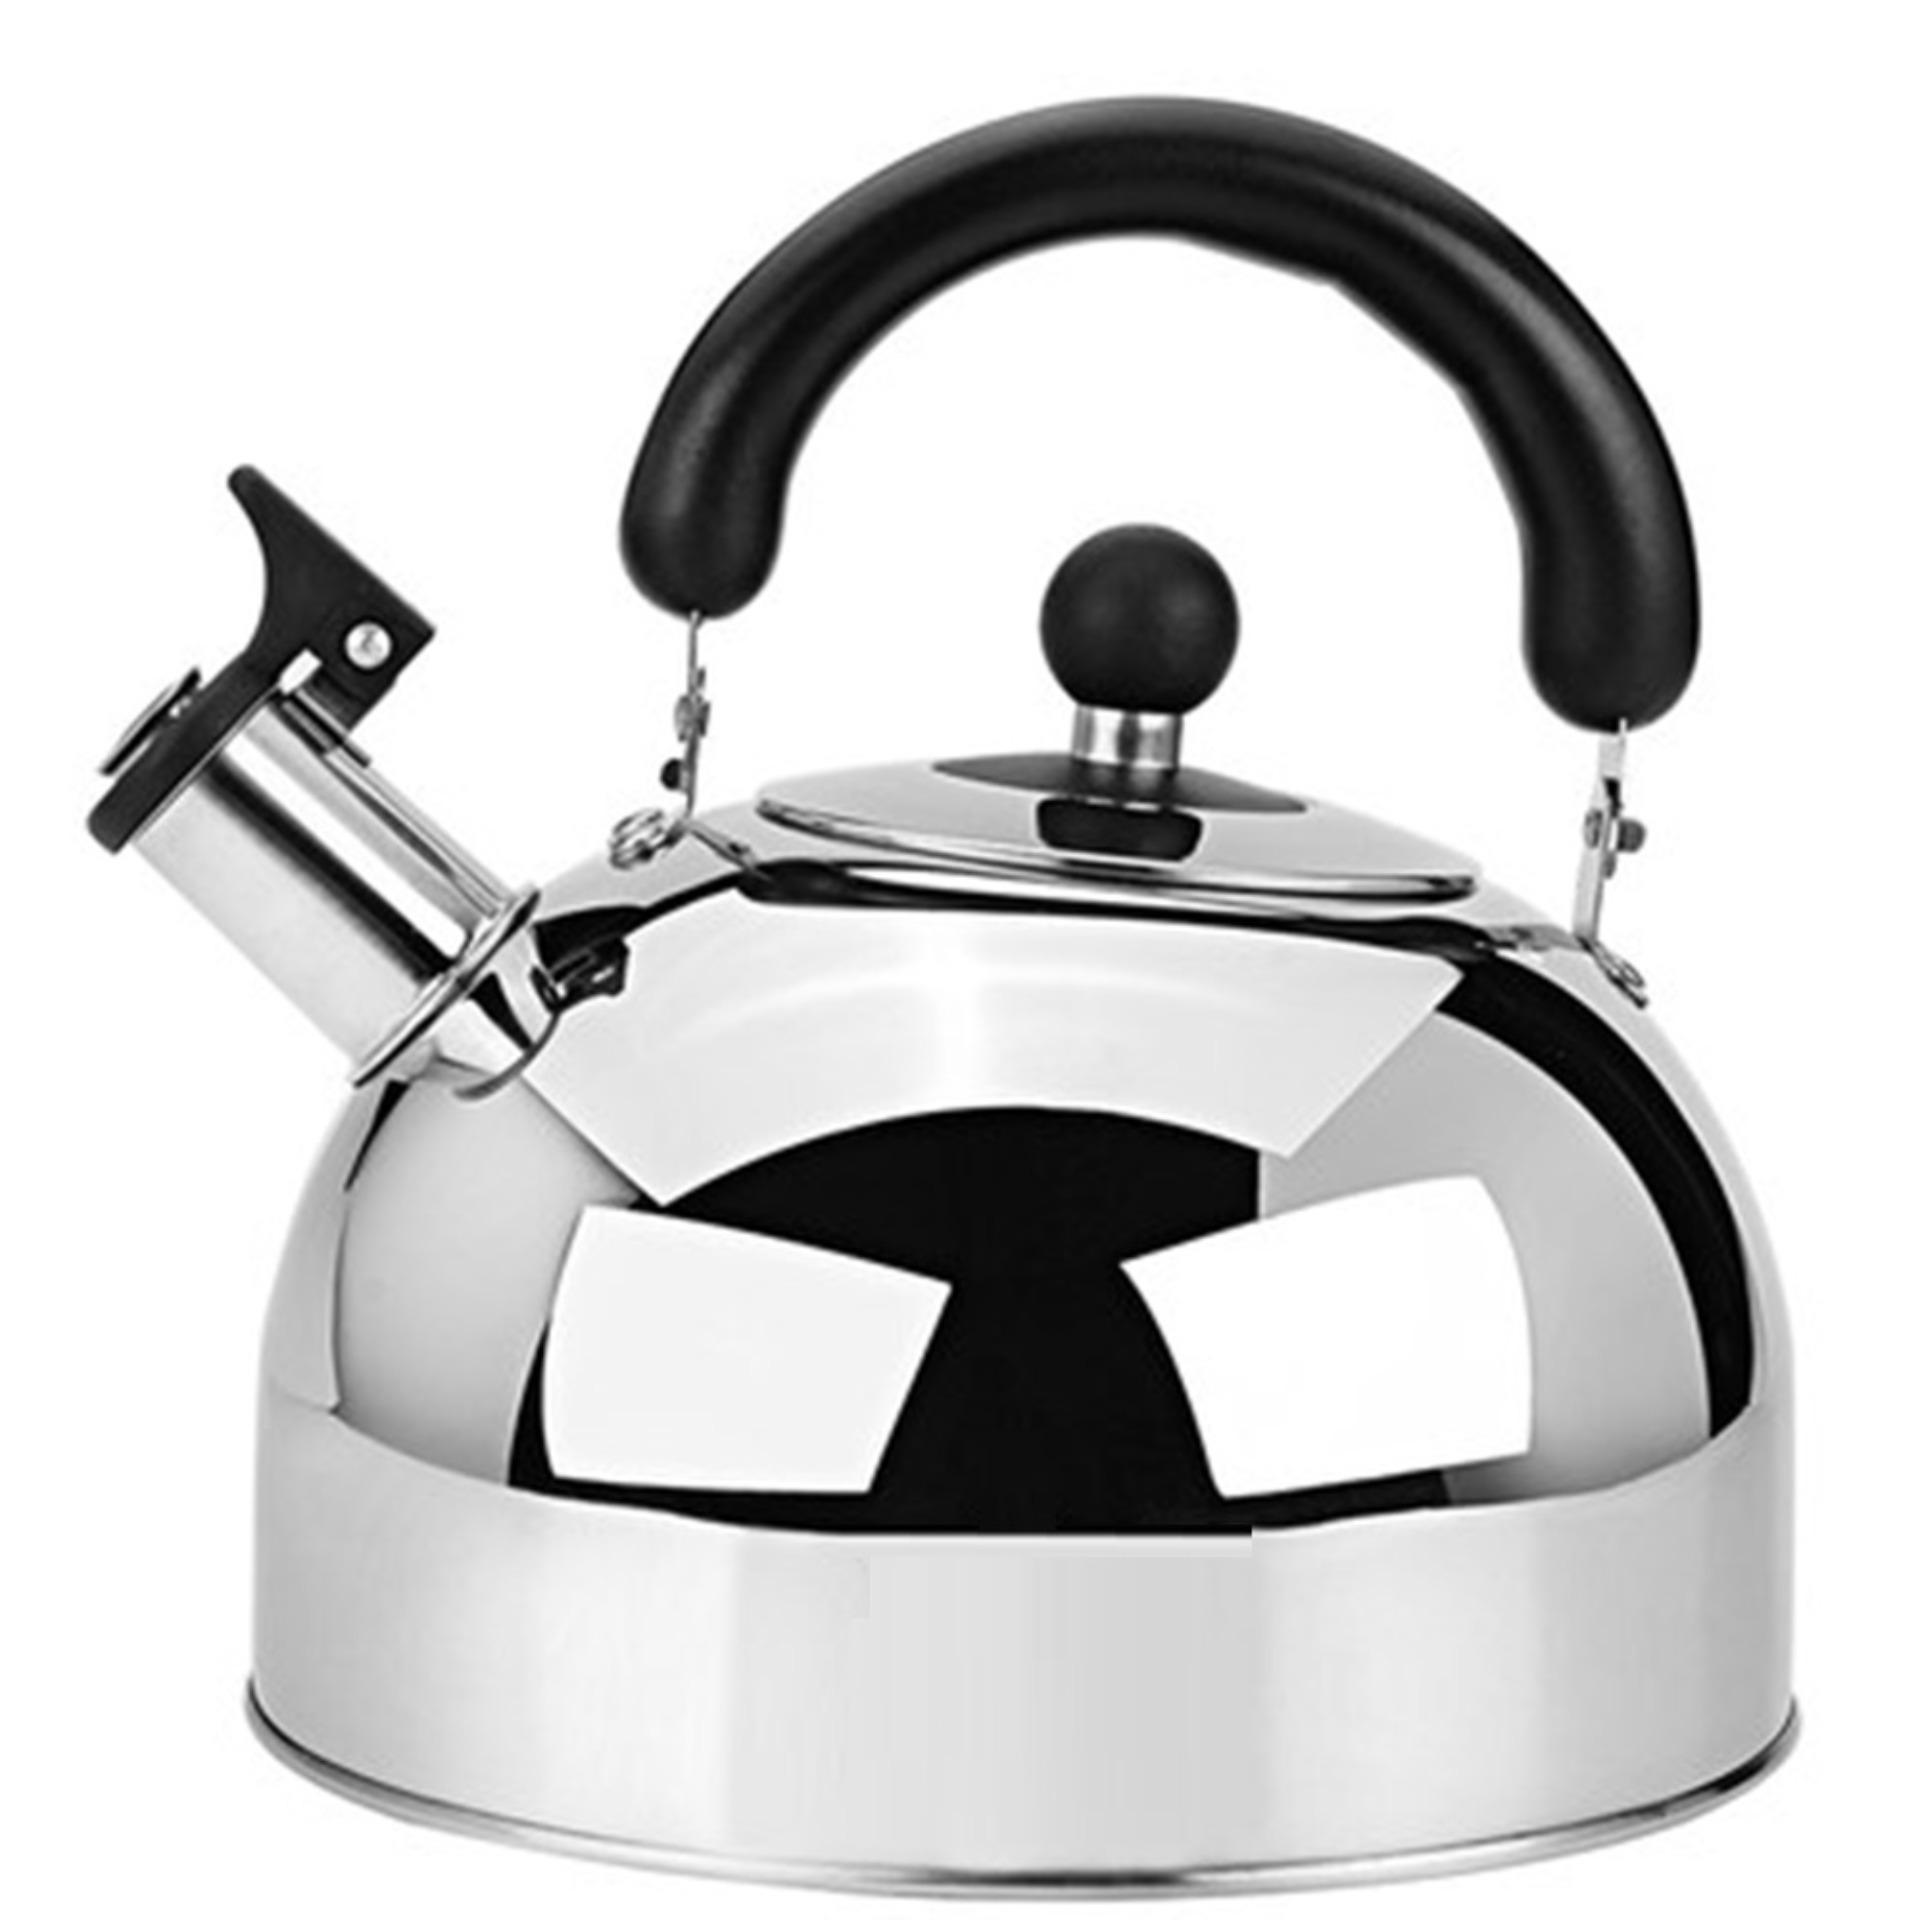 Kettle Bunyi Stainless Stell 1.5 Liter- Whistling Kettle / Ceret Stainless 1.5 L